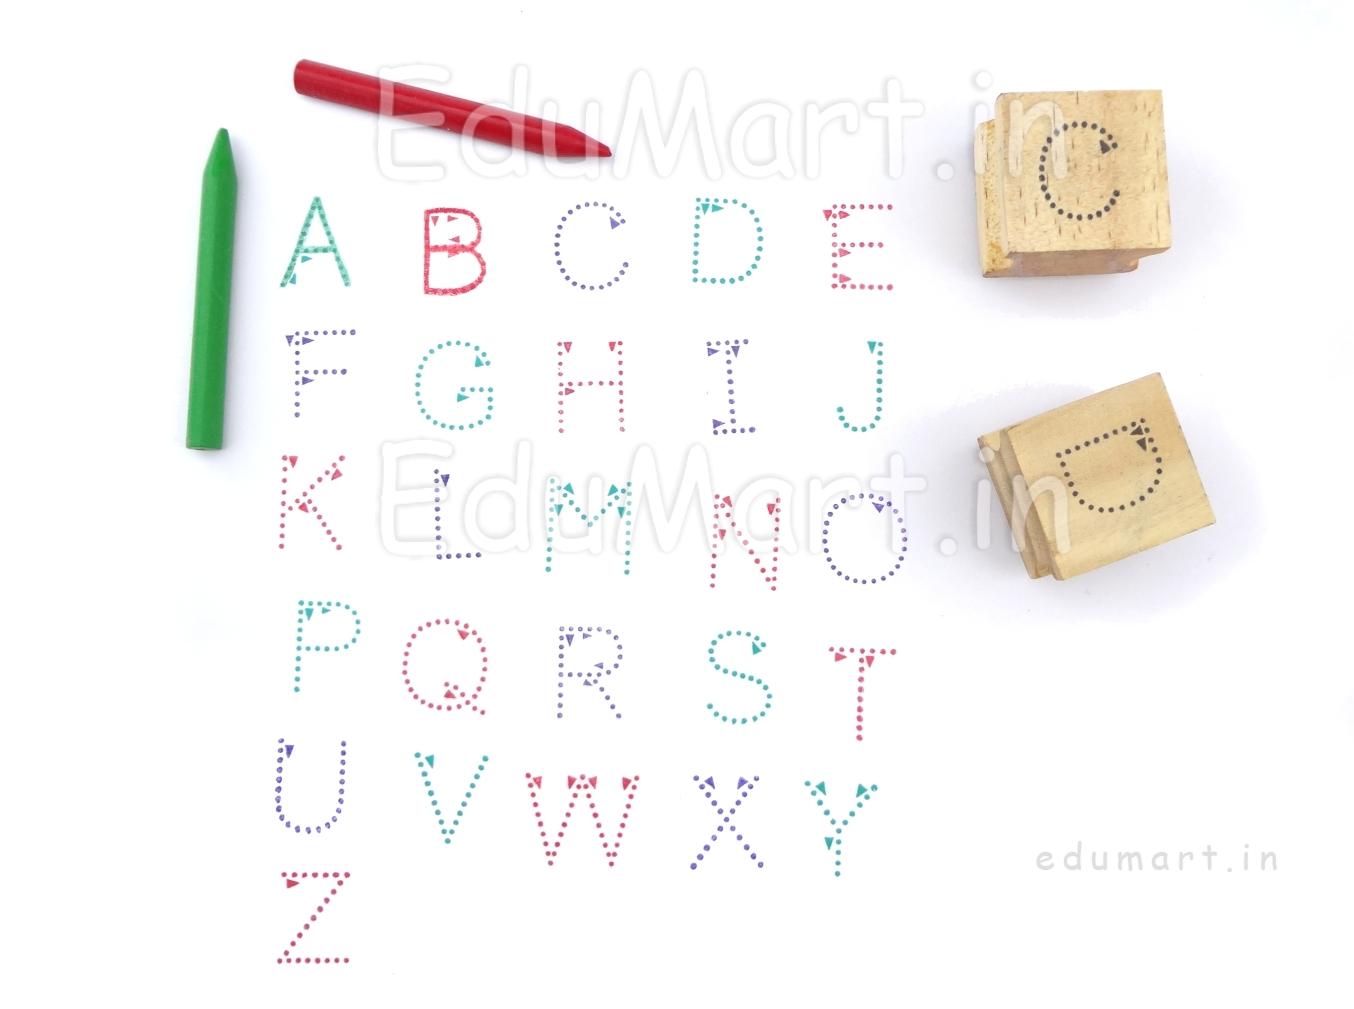 Product|Language Rubber Stamps|Upper Case Alphabet Rubber